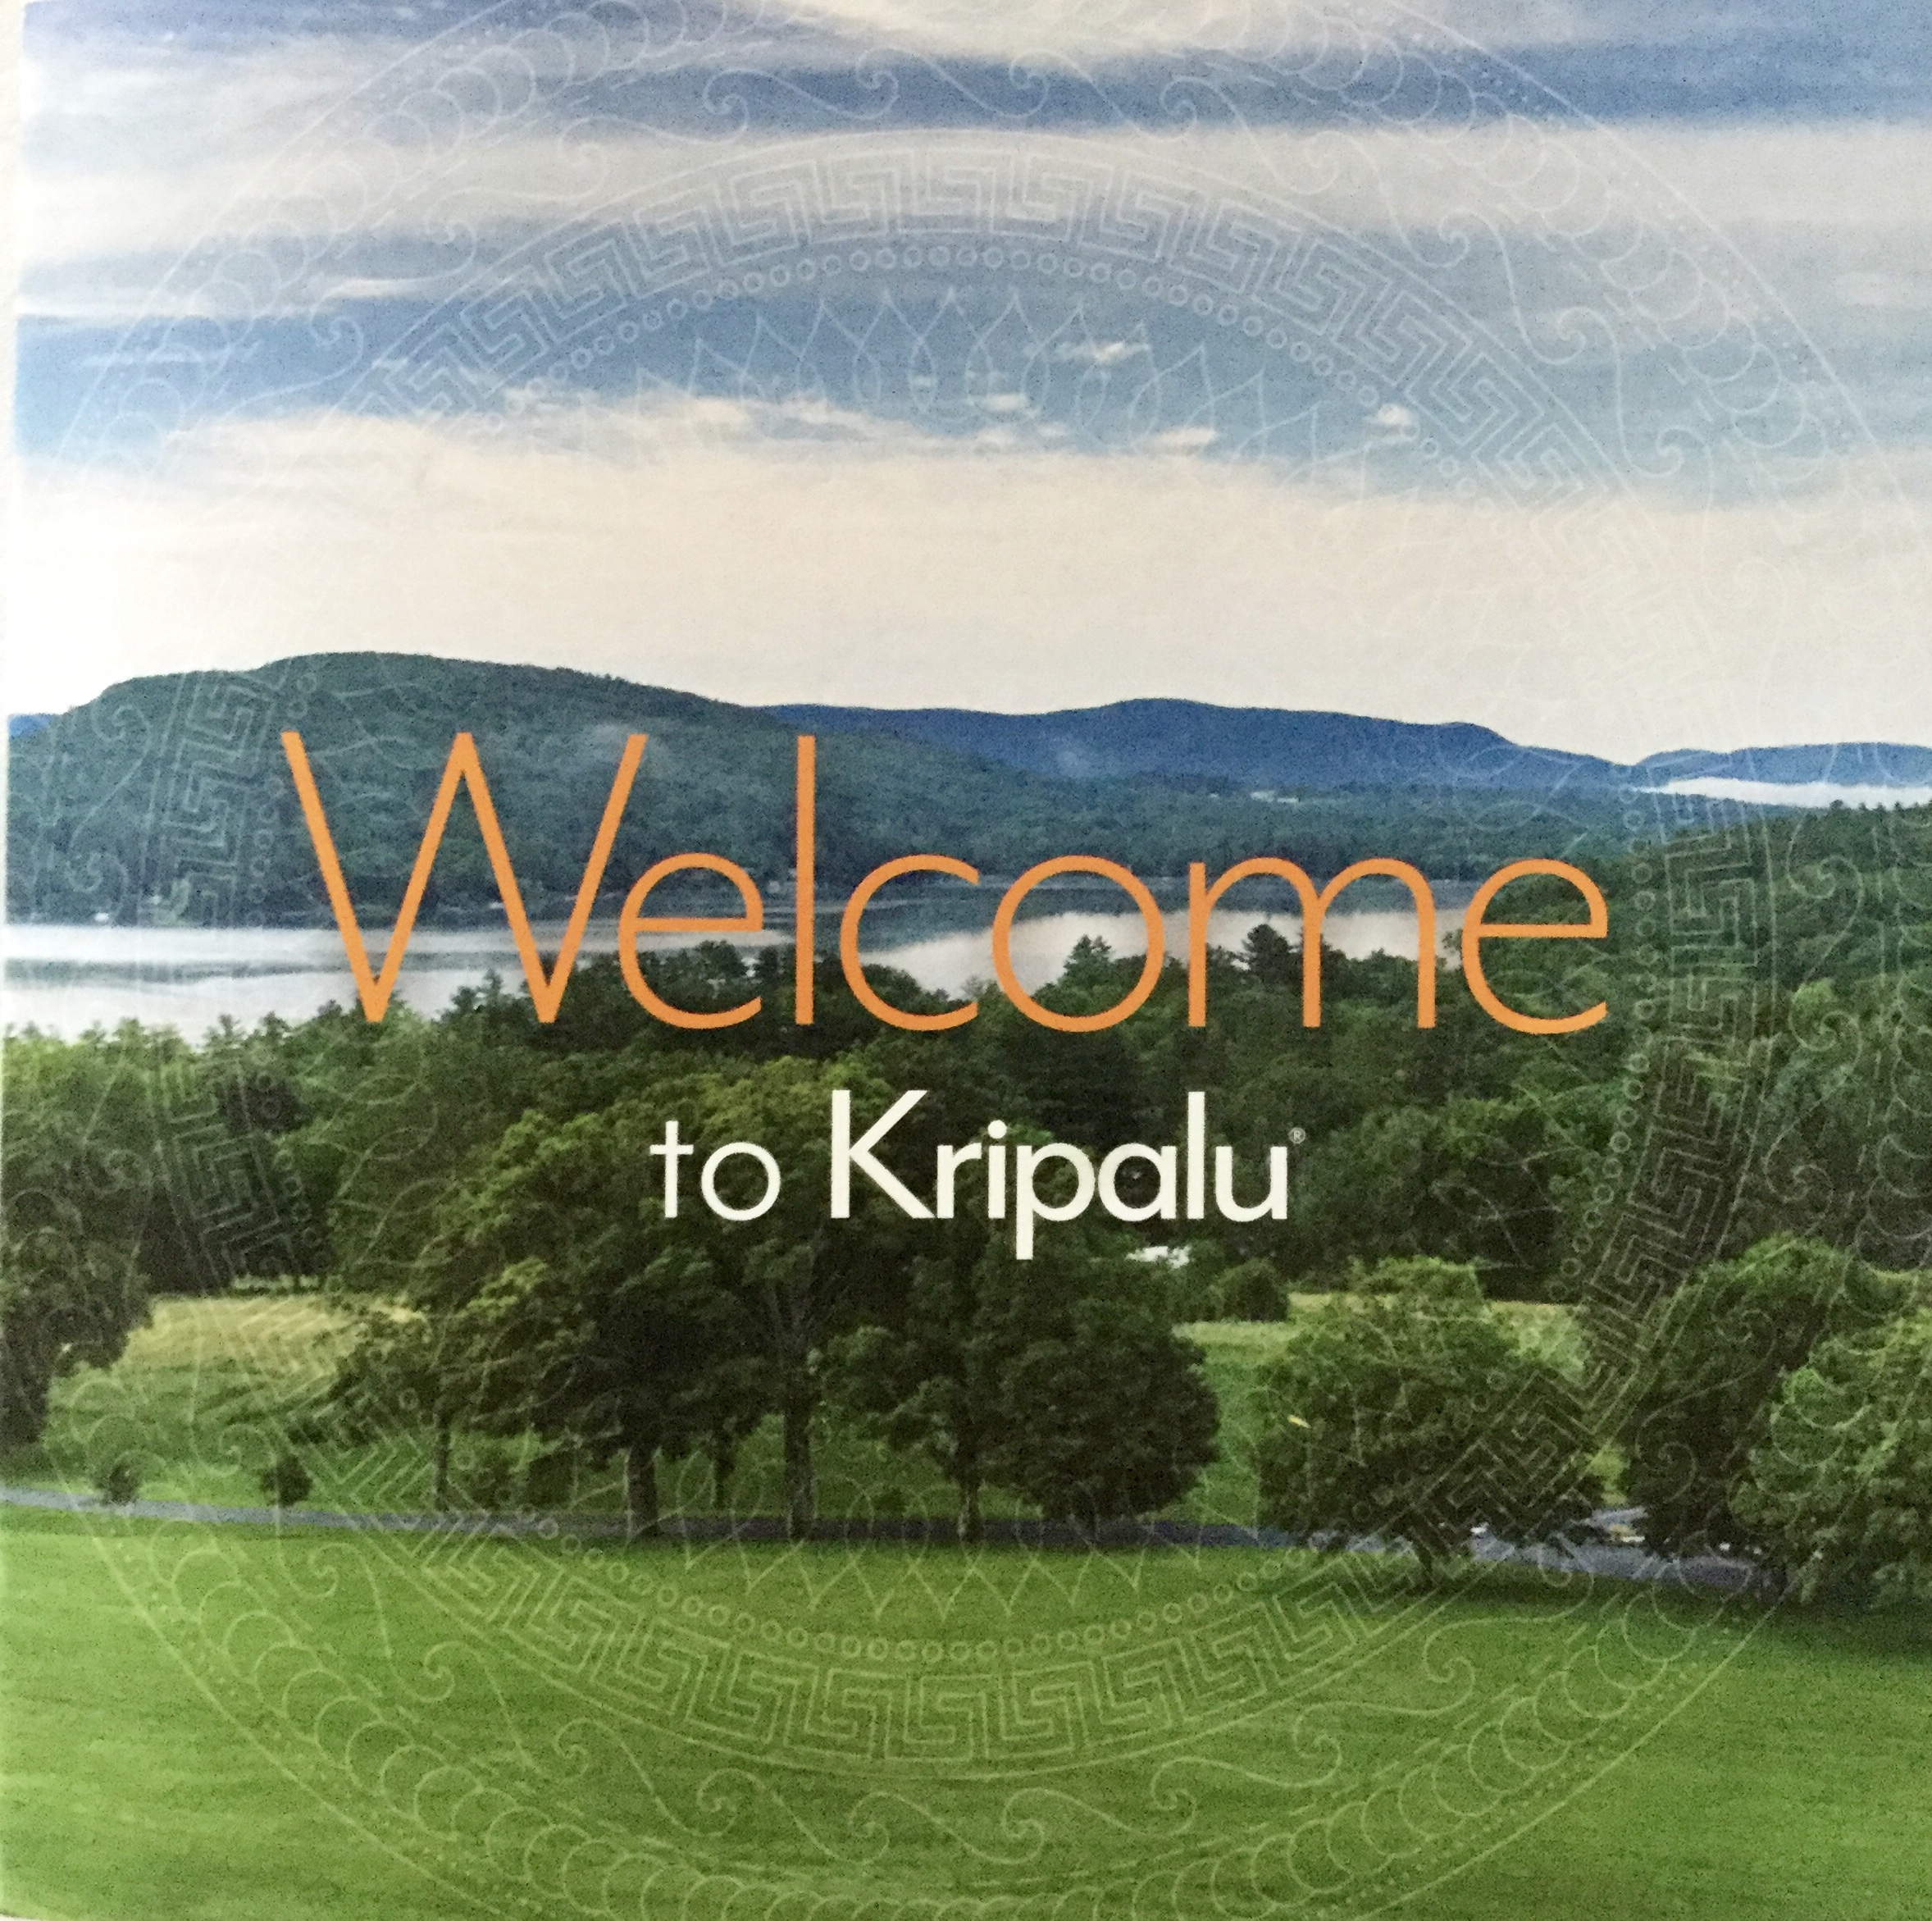 Finding Respite with Yoga Nidra at Kripalu Center for Yoga & Health